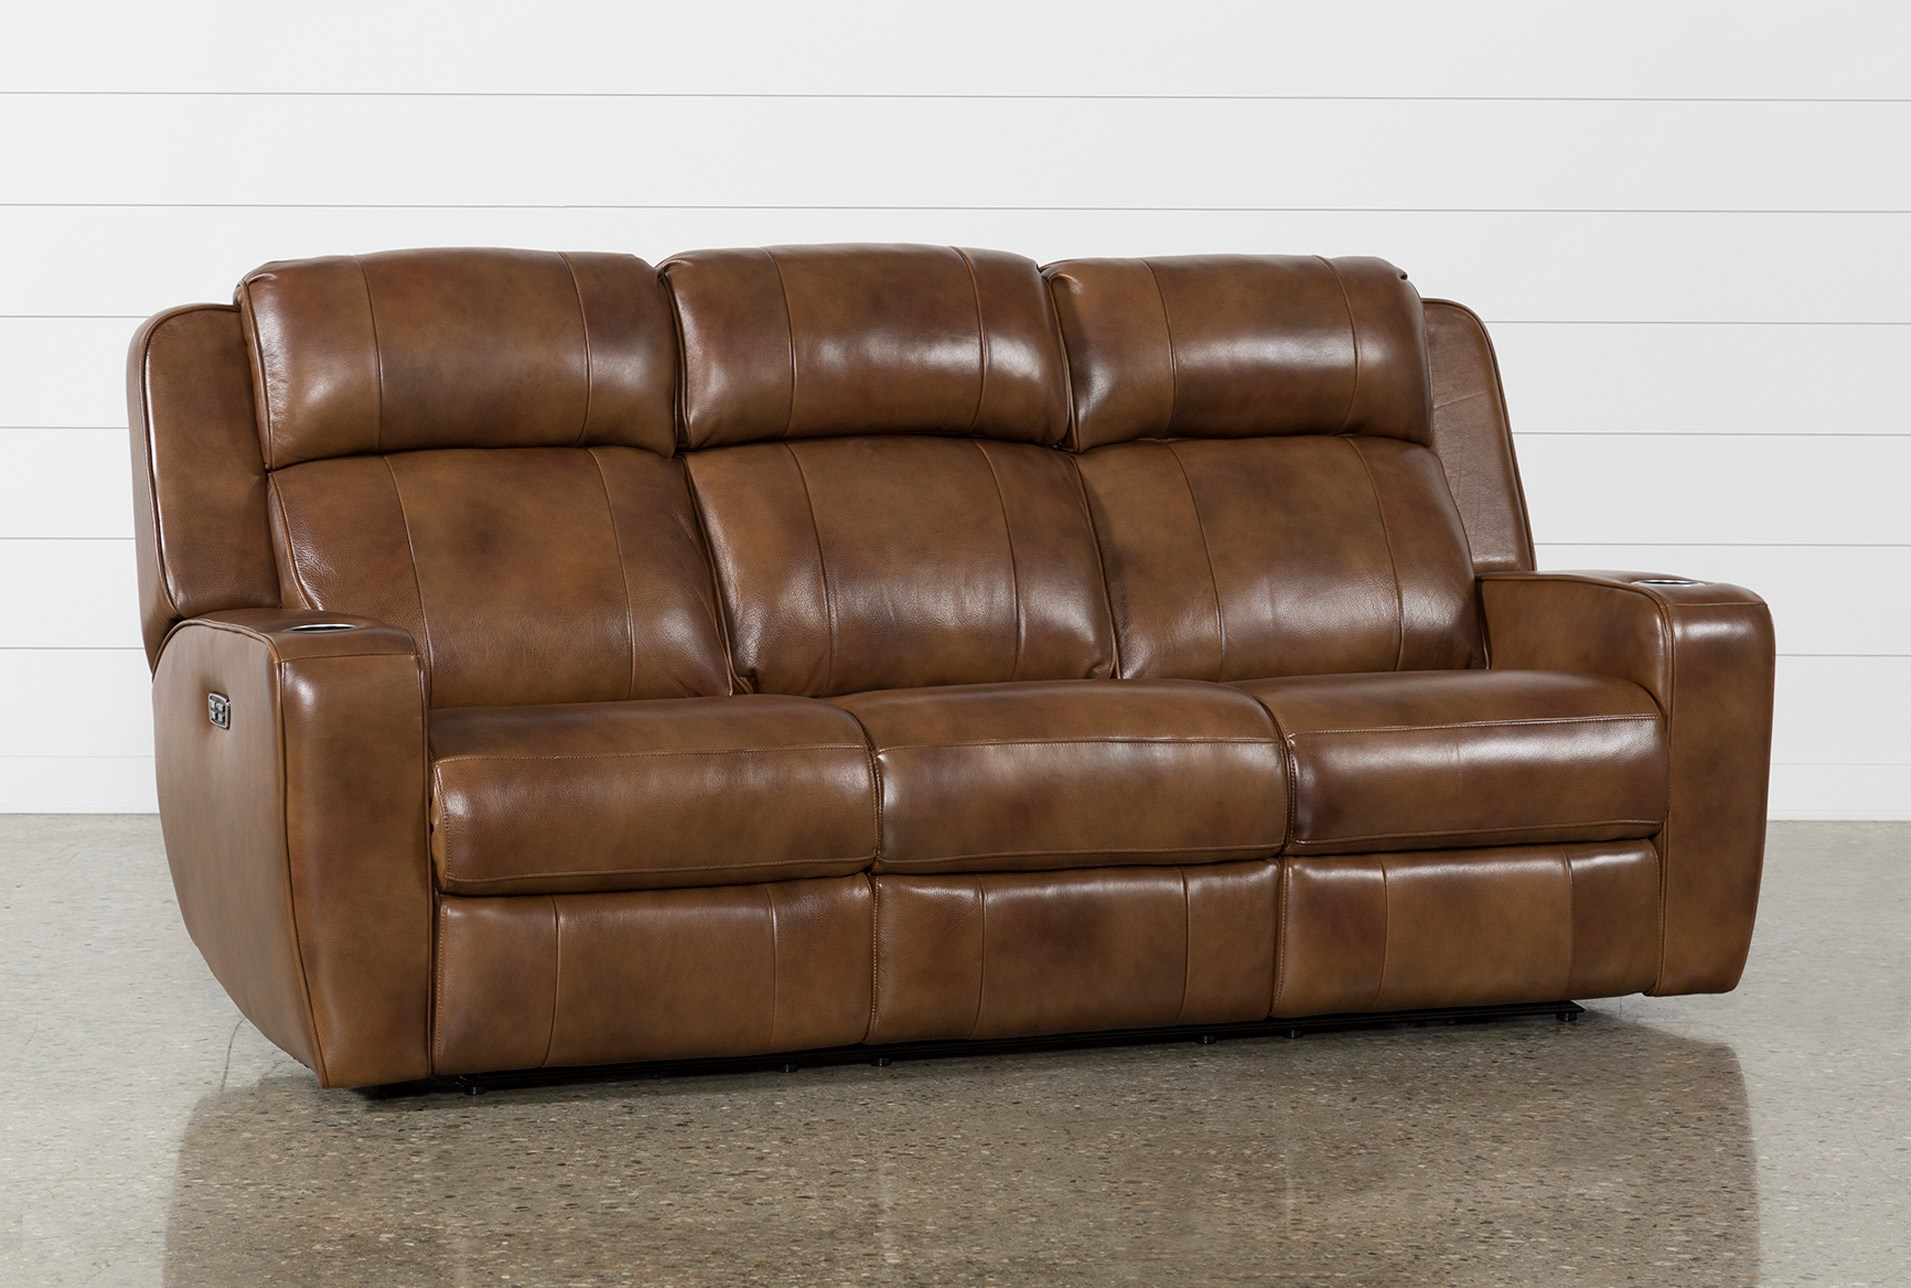 Phelps Leather Reclining Sofa W Headrest Usb Qty 1 Has Been Successfully Added To Your Cart